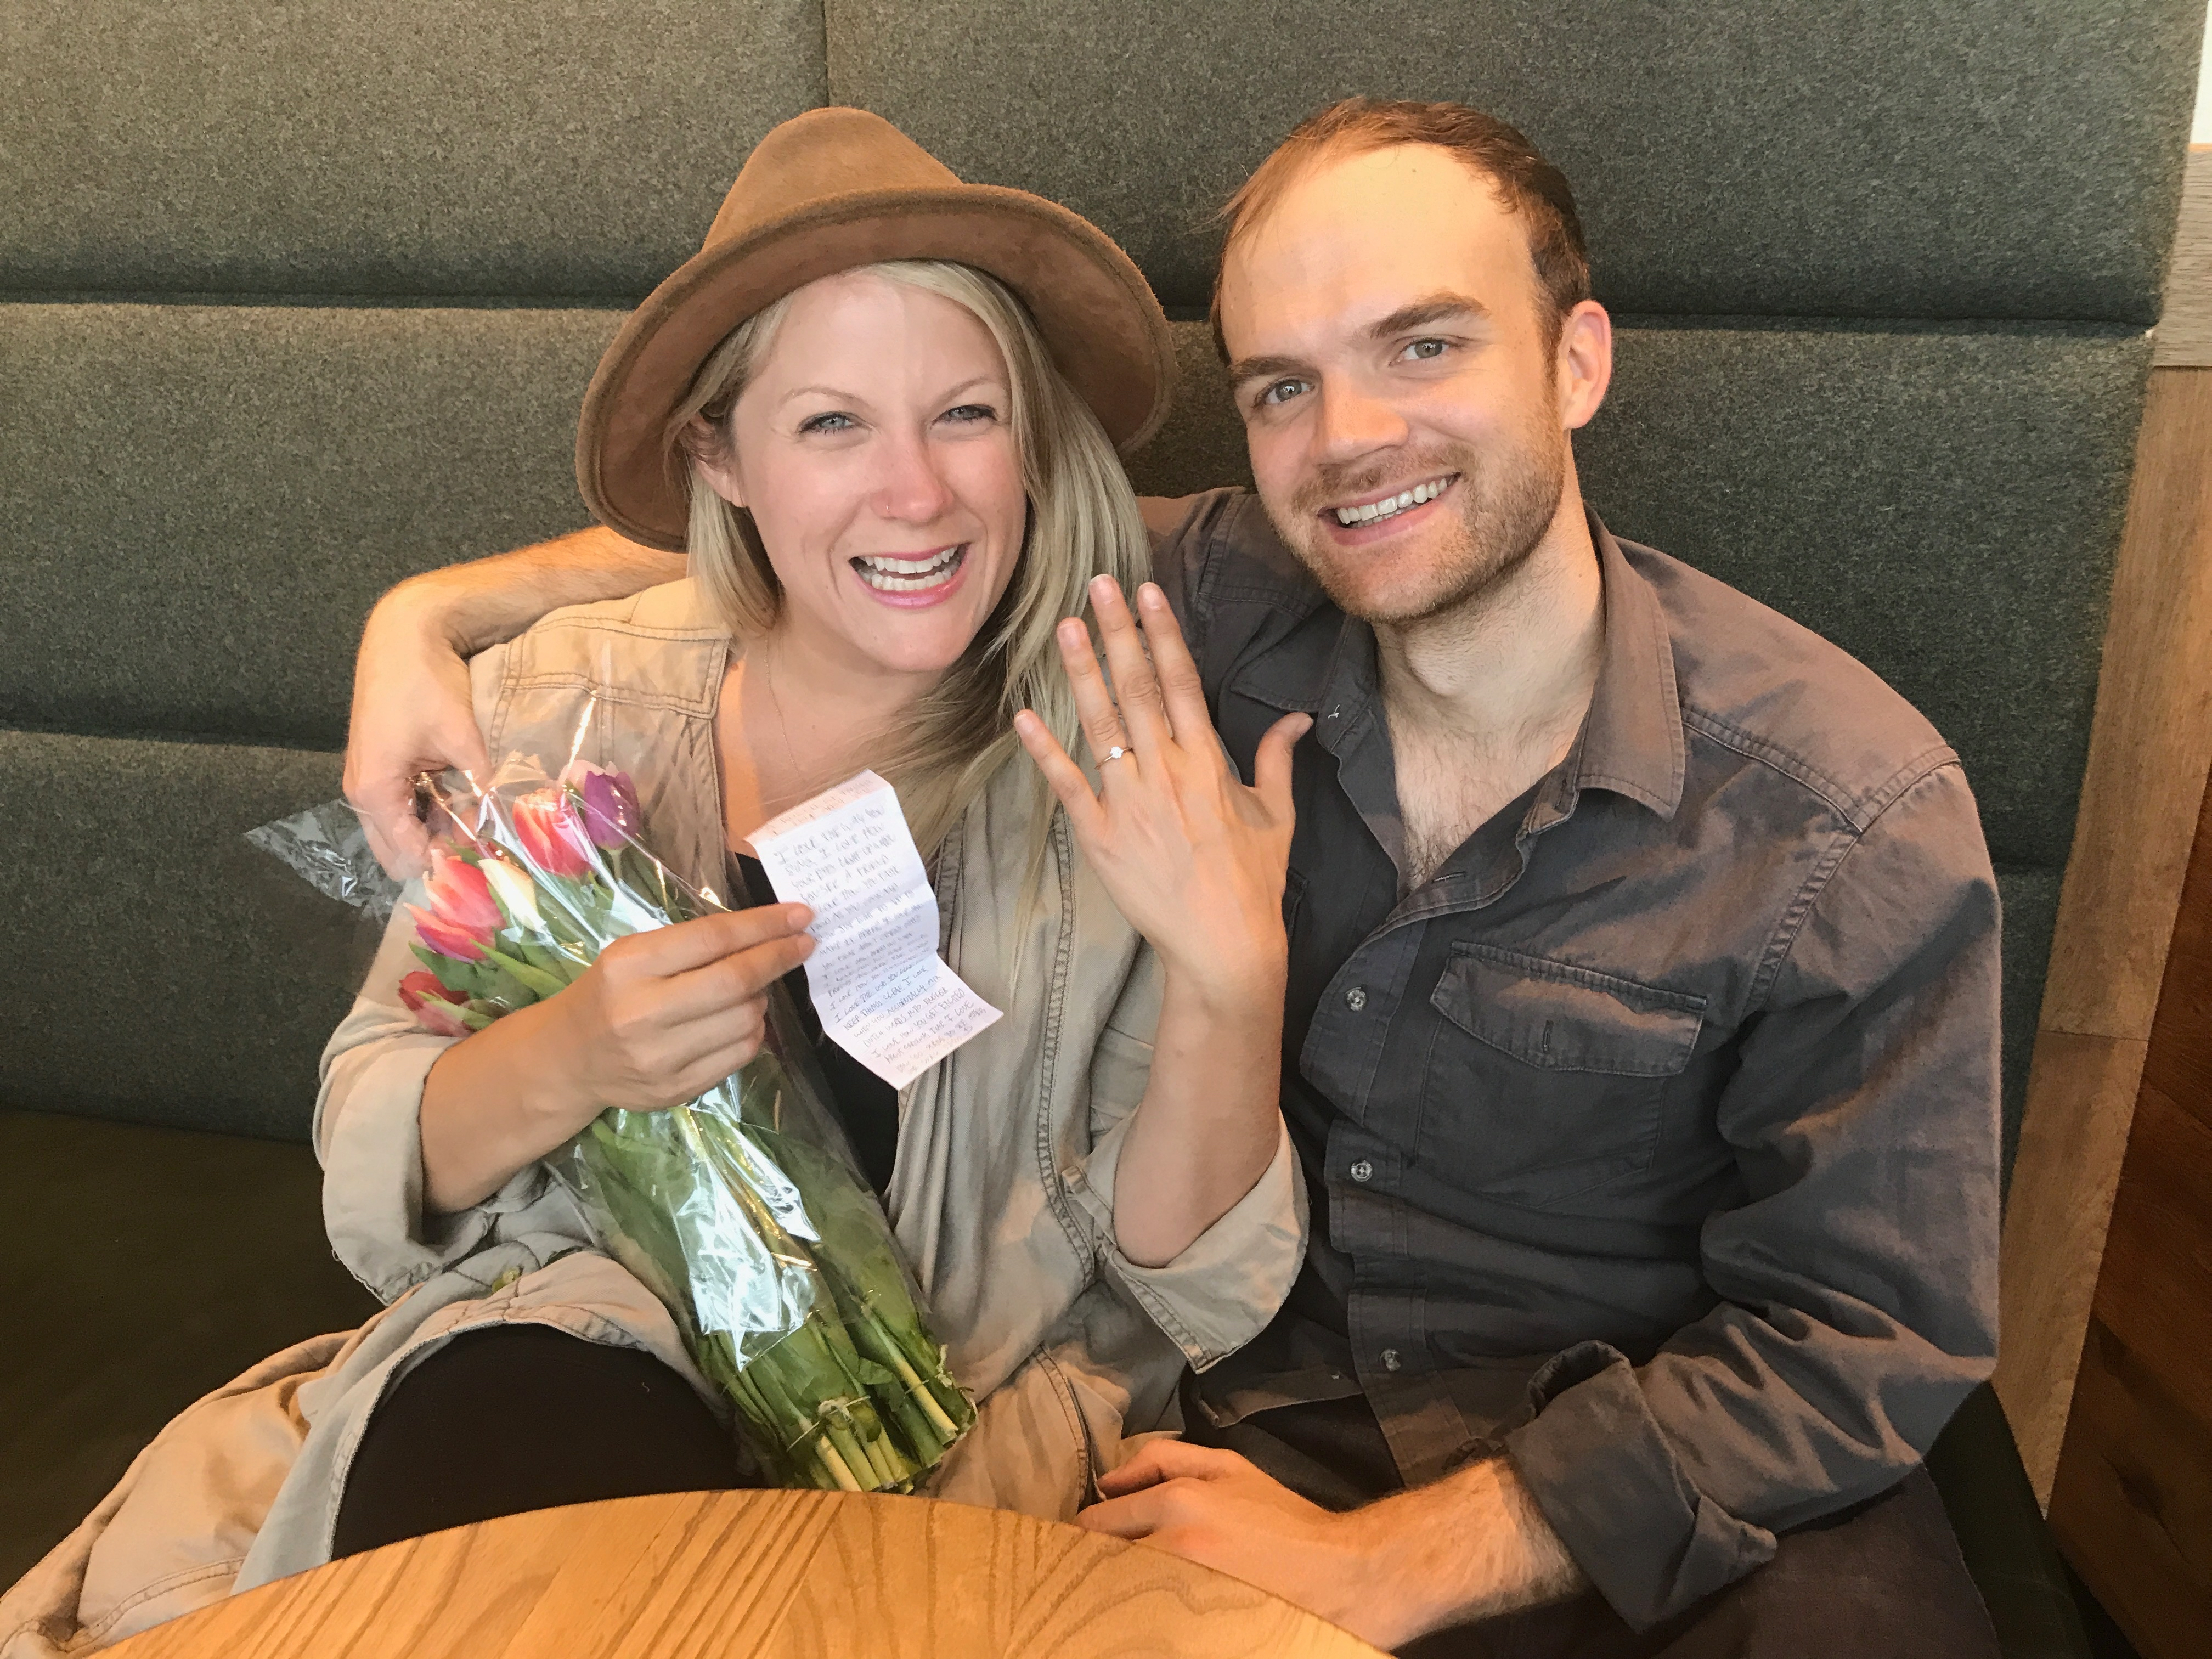 This couple got engaged in the Amsterdam airport Starbucks. (Credit: Anna Havens, courtesy of Starbucks)